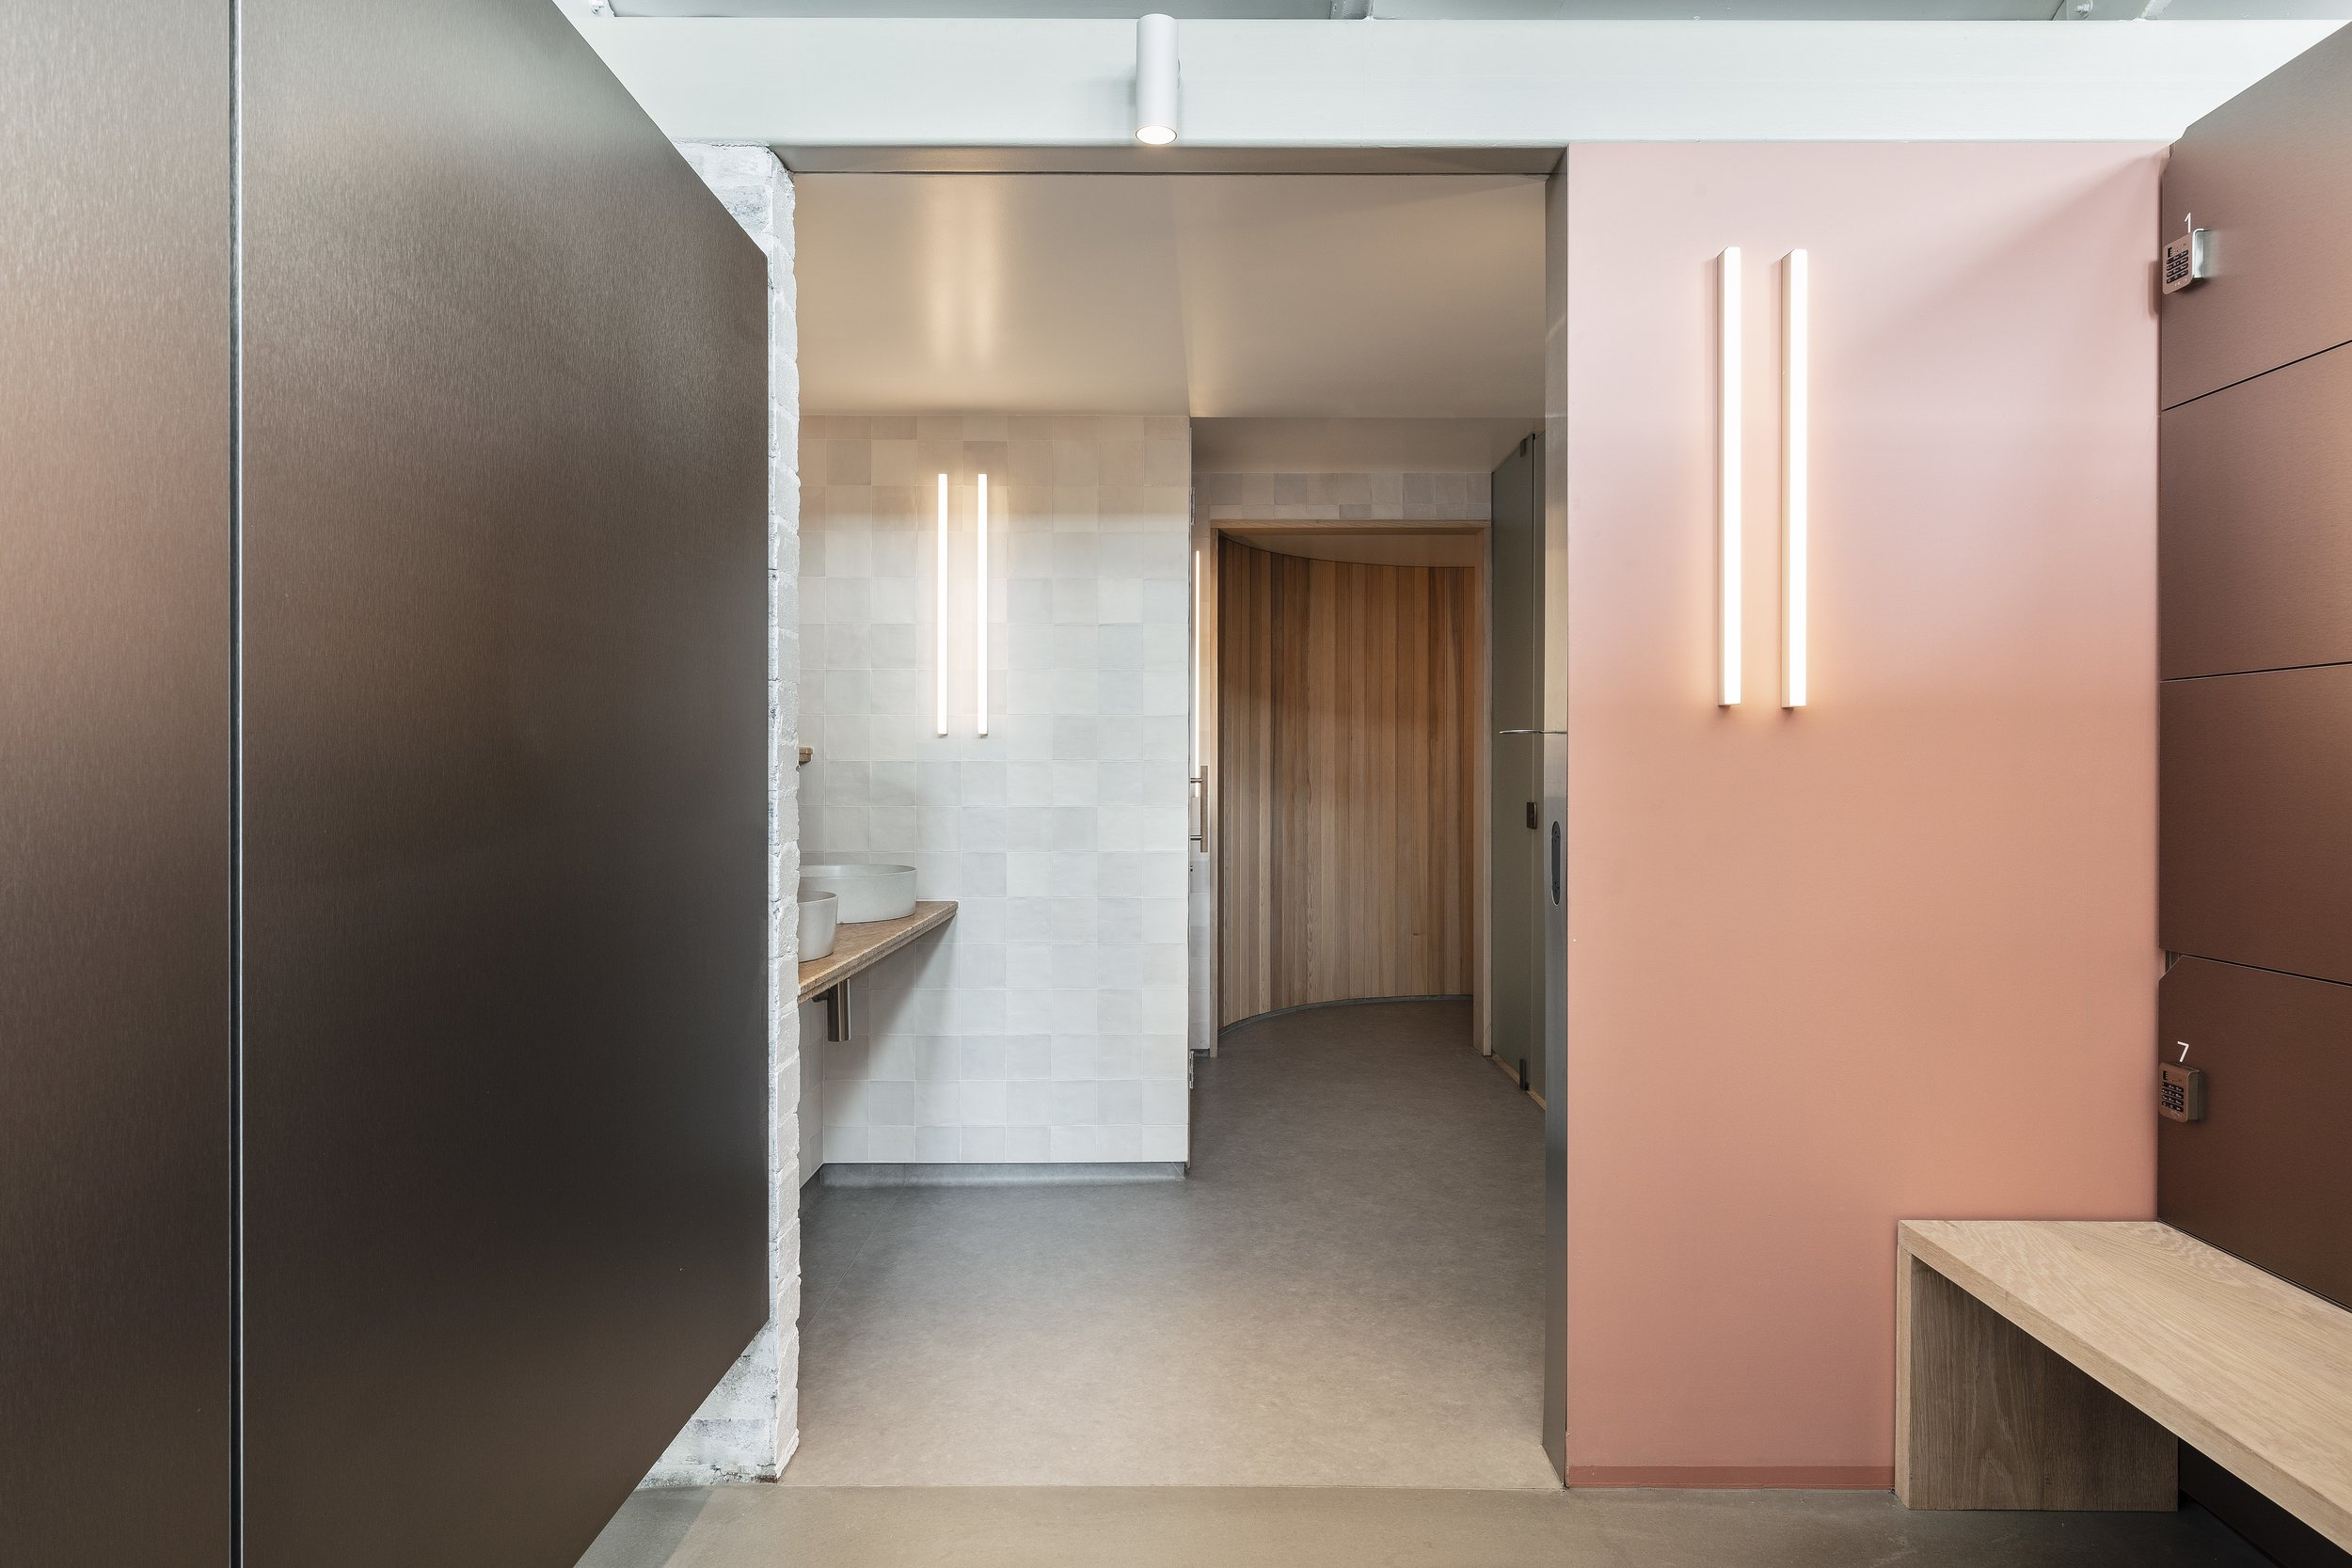 Designed by Anna Trefely,  Shelter  features a restrained and minimal palette of materials and colour.